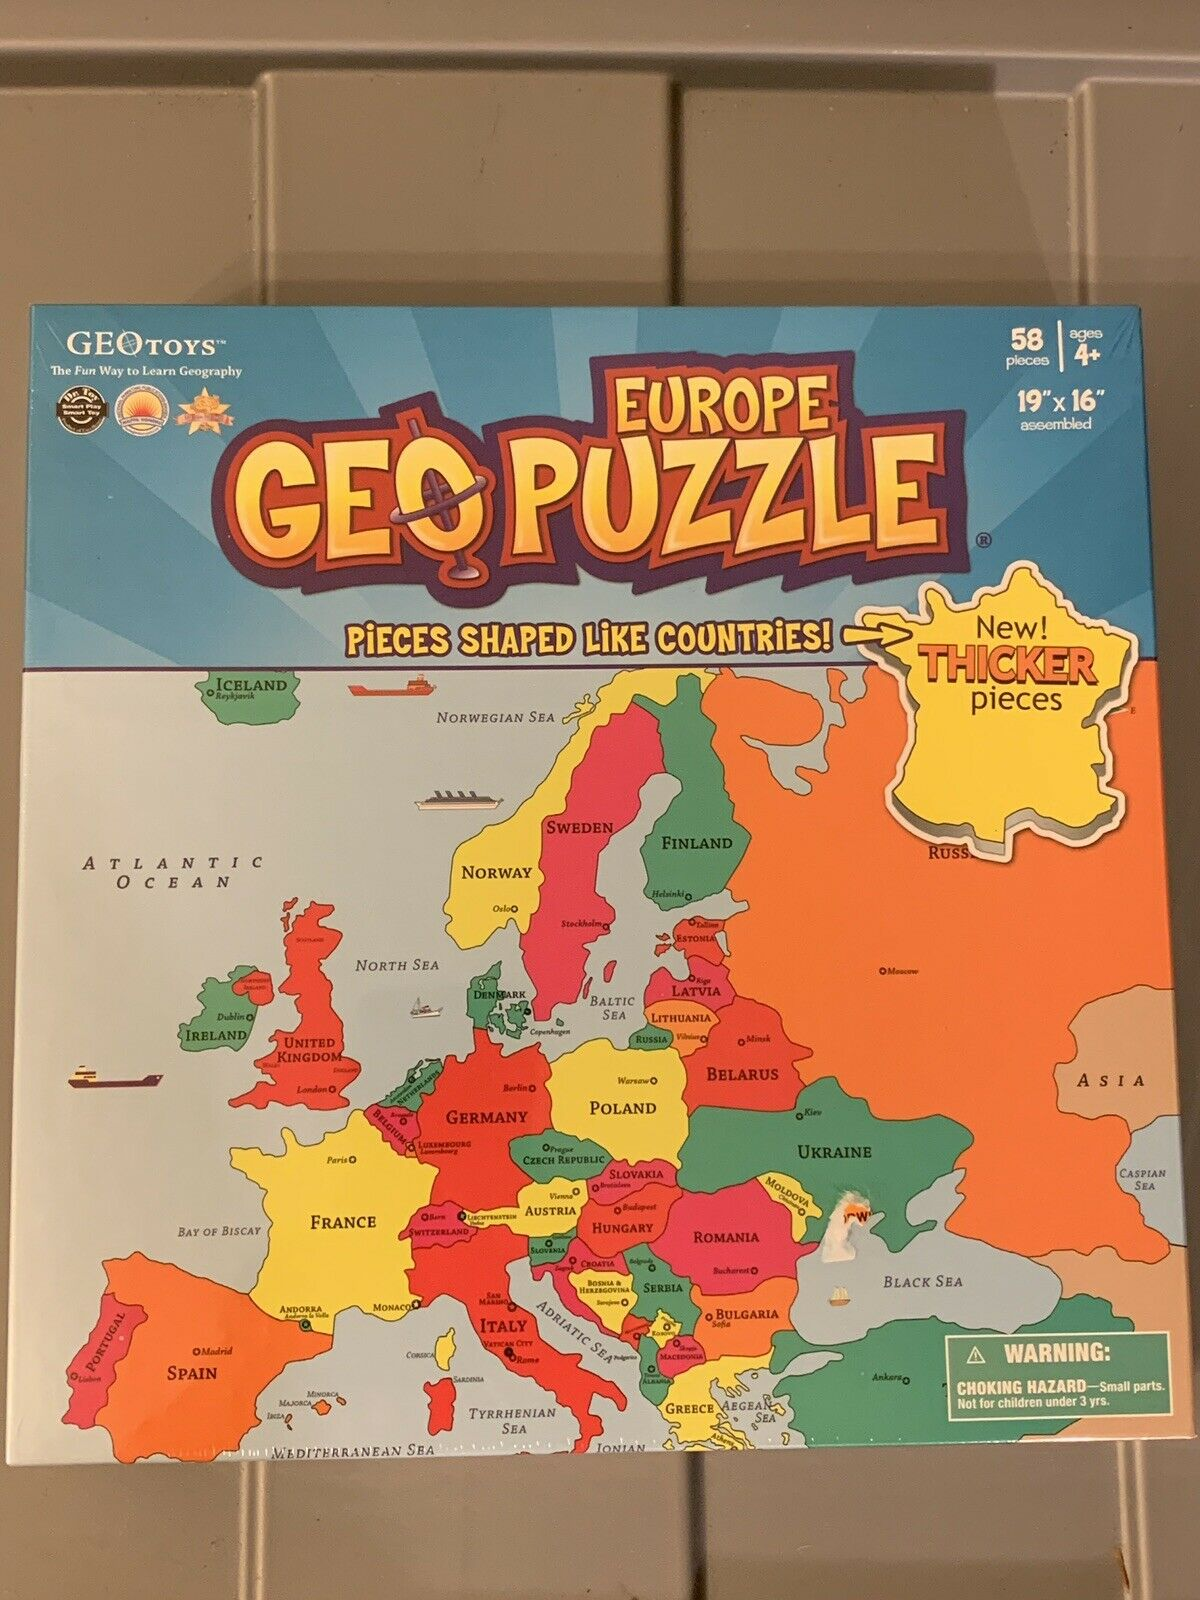 by Geotoys Educational Geography Jigsaw Puzzle 58 pcs GeoPuzzle Europe